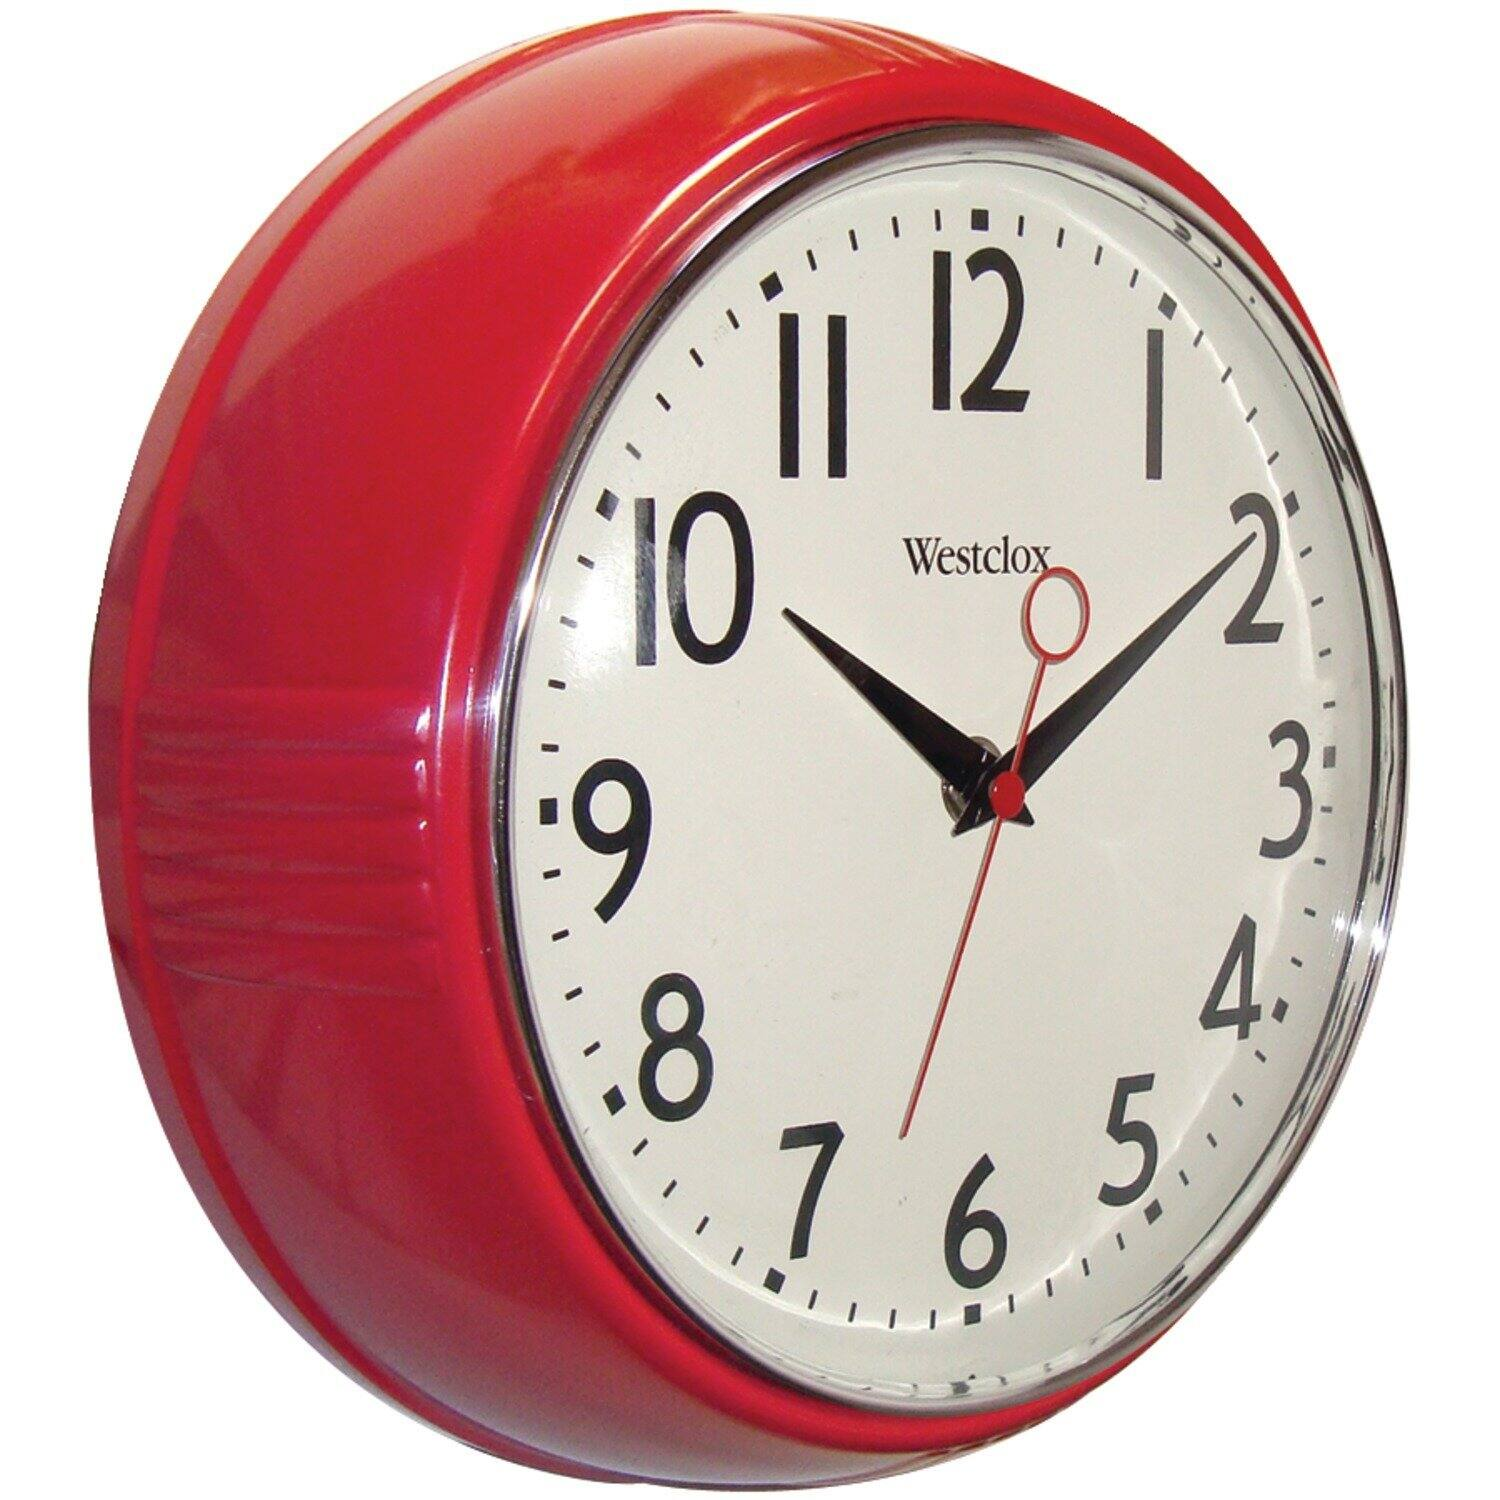 """9.5"""" Westclox Retro 1950s Kitchen Wall Clock (Red) $7.71 + Free S&H w/ Prime or orders $25+"""